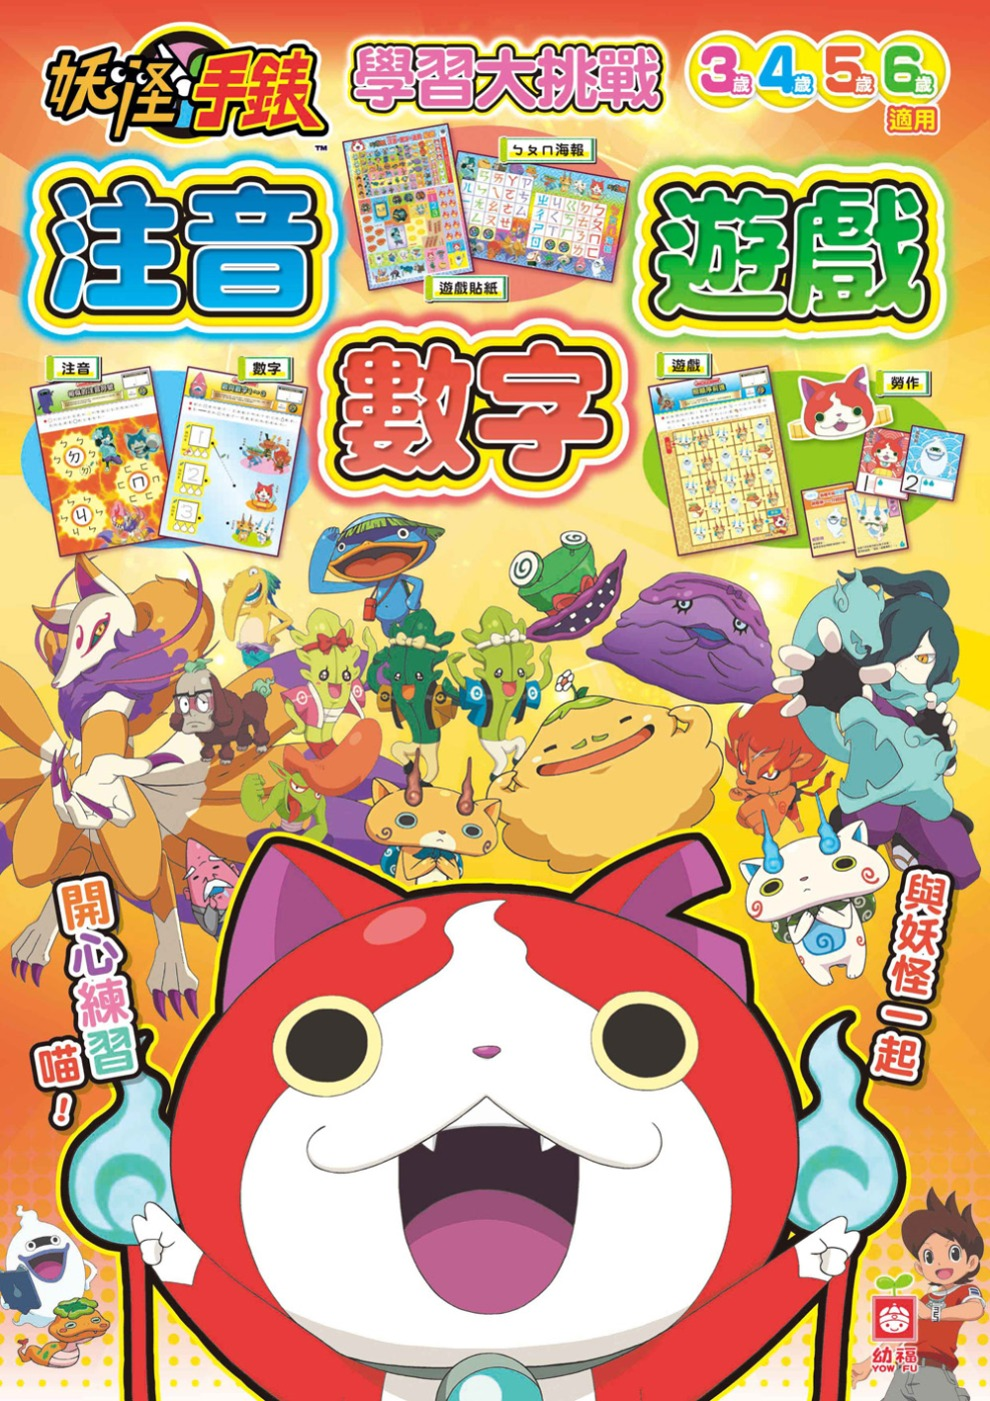 (❤️ Preloved) Yo-Kai Watch Activity Book: Zhuyin, Math, Games • 妖怪手錶-學習大挑戰:注音、數字、遊戲